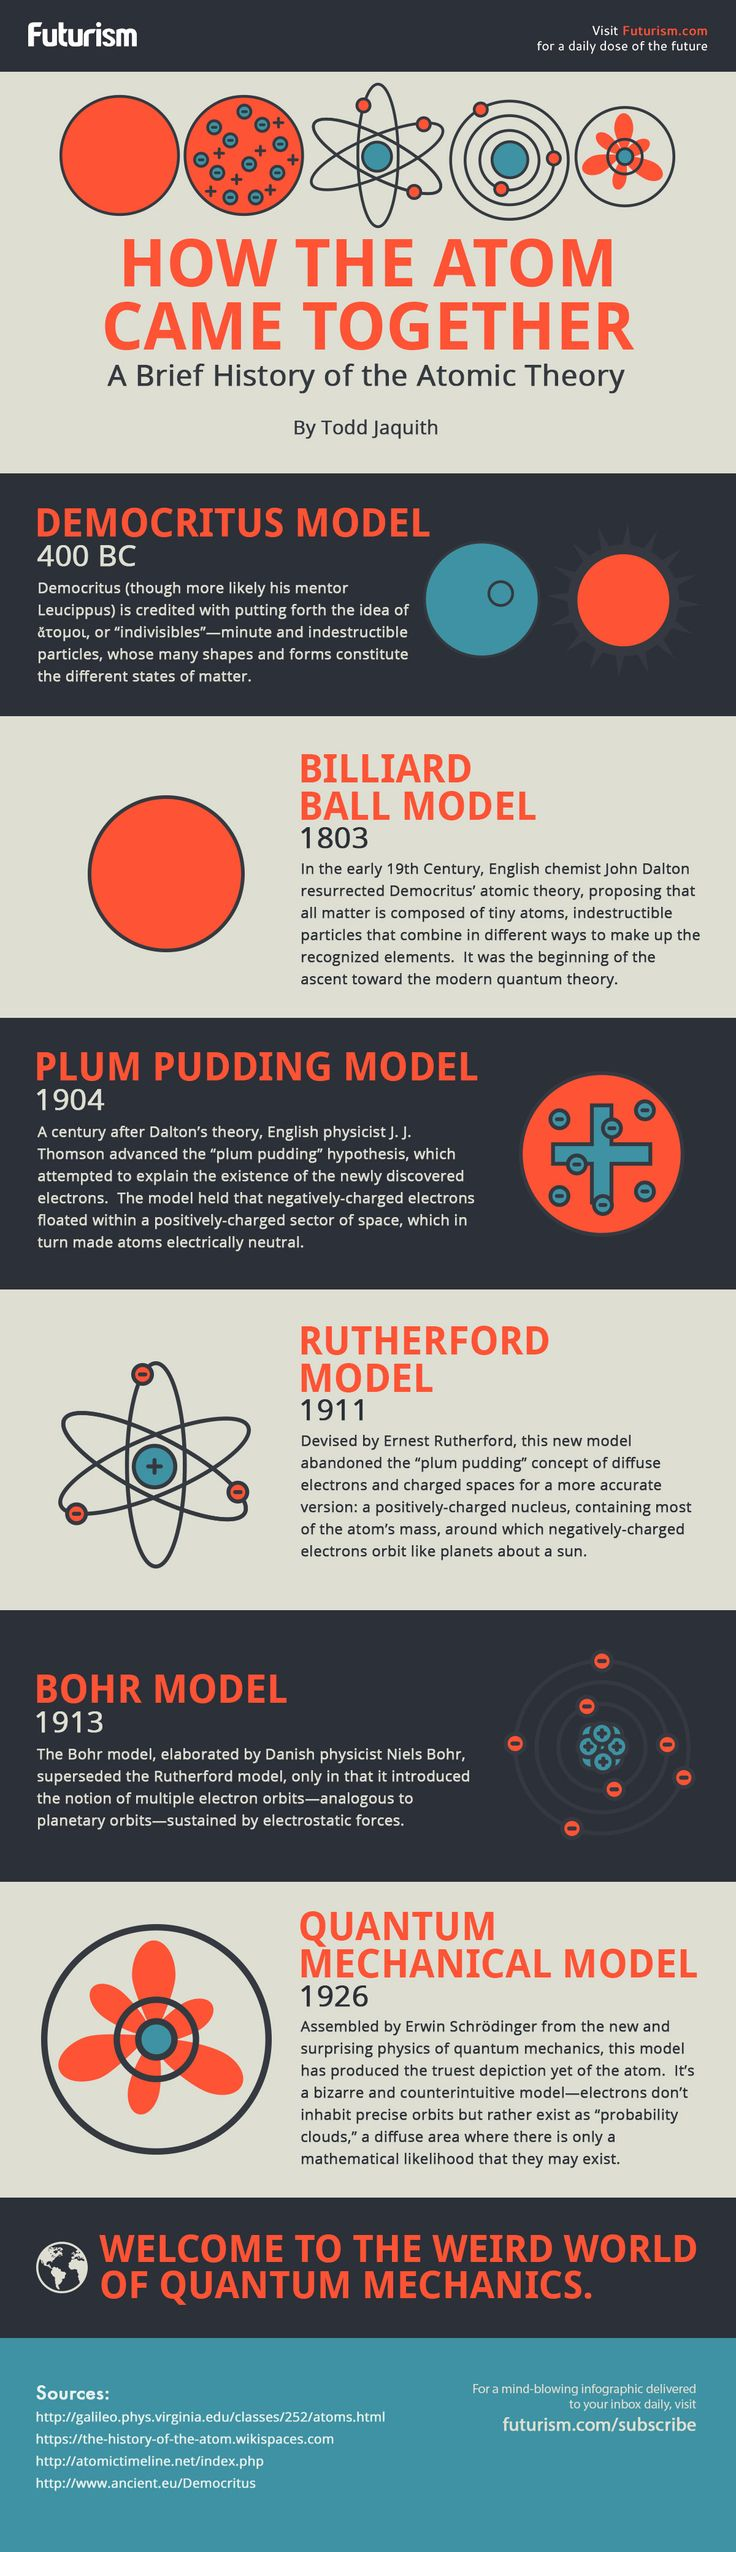 687 best infographic images on pinterest info graphics a brief history of atomic theory infographic we condensed years of atomic theory into a single infographic fandeluxe Choice Image